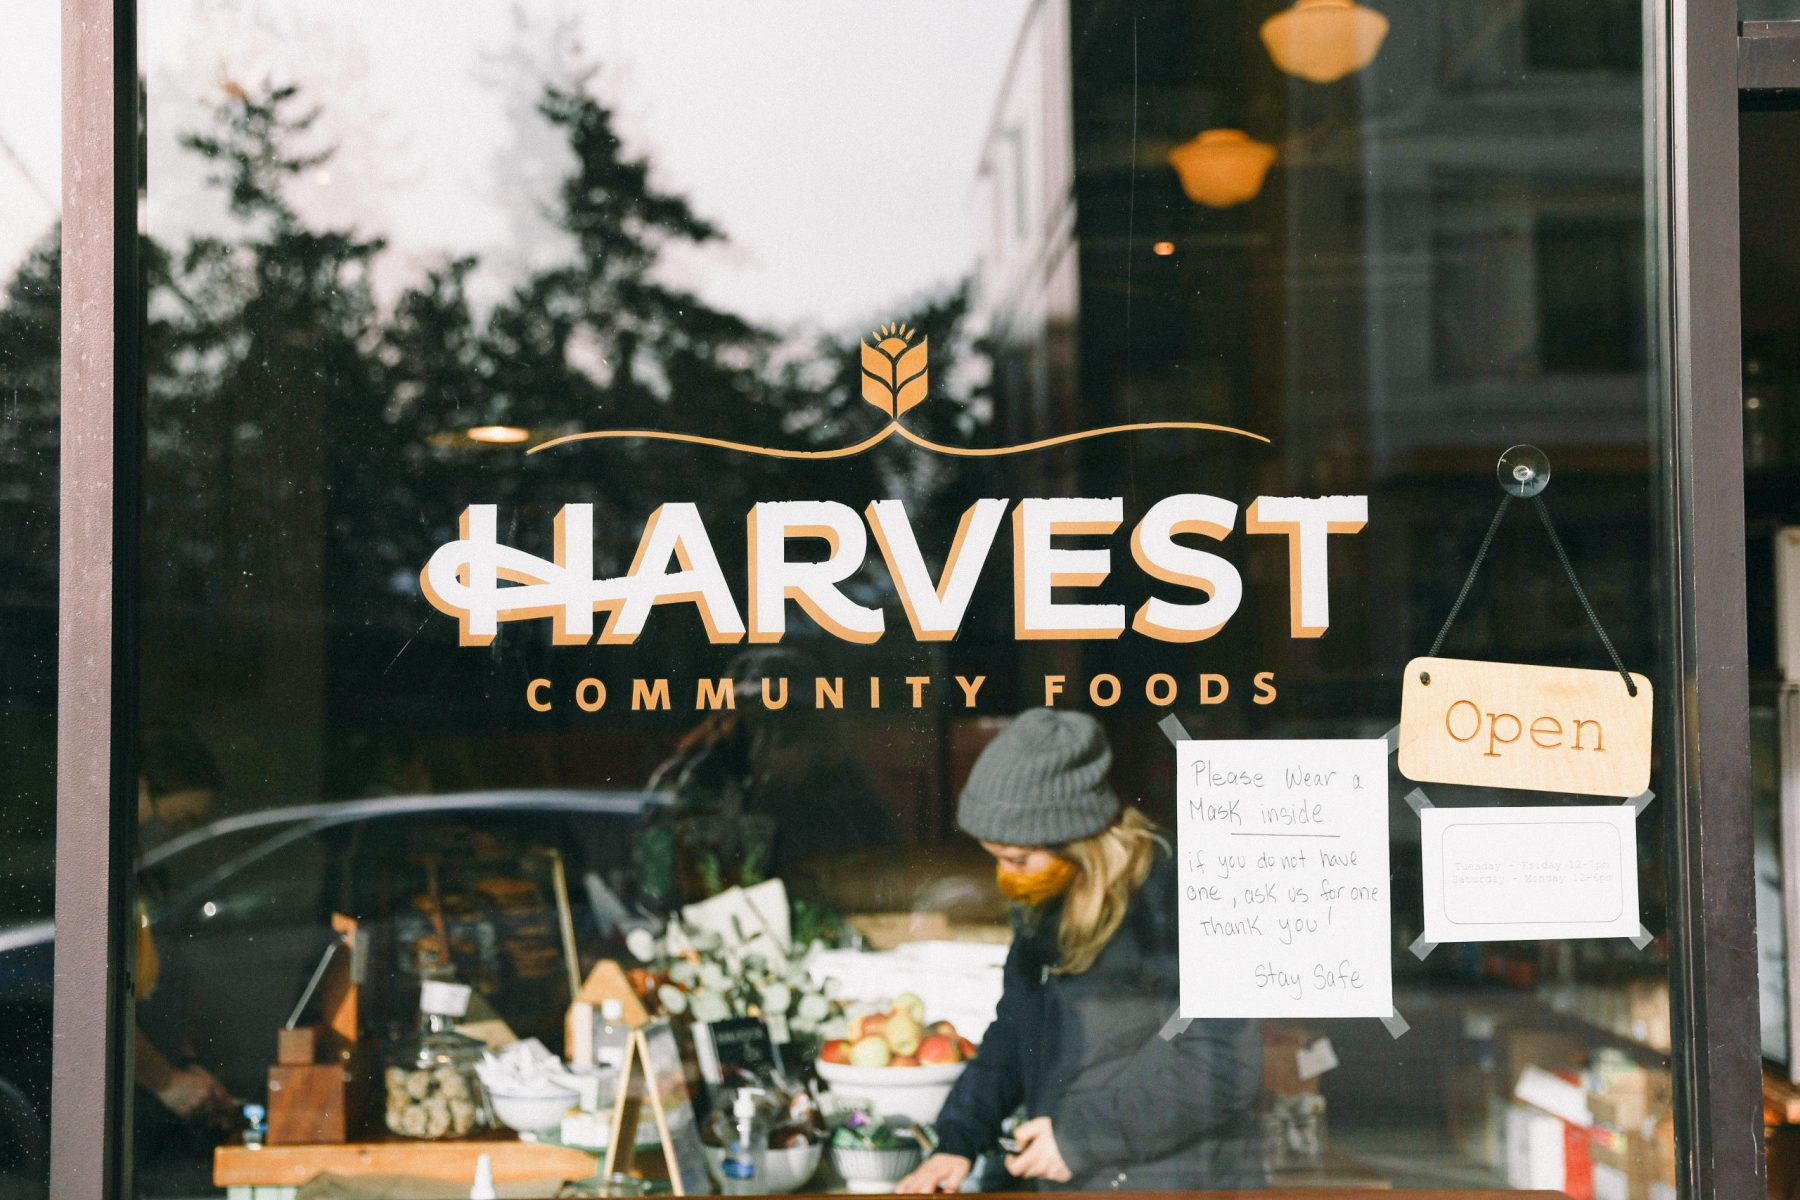 33 Eats: Harvest Community Foods